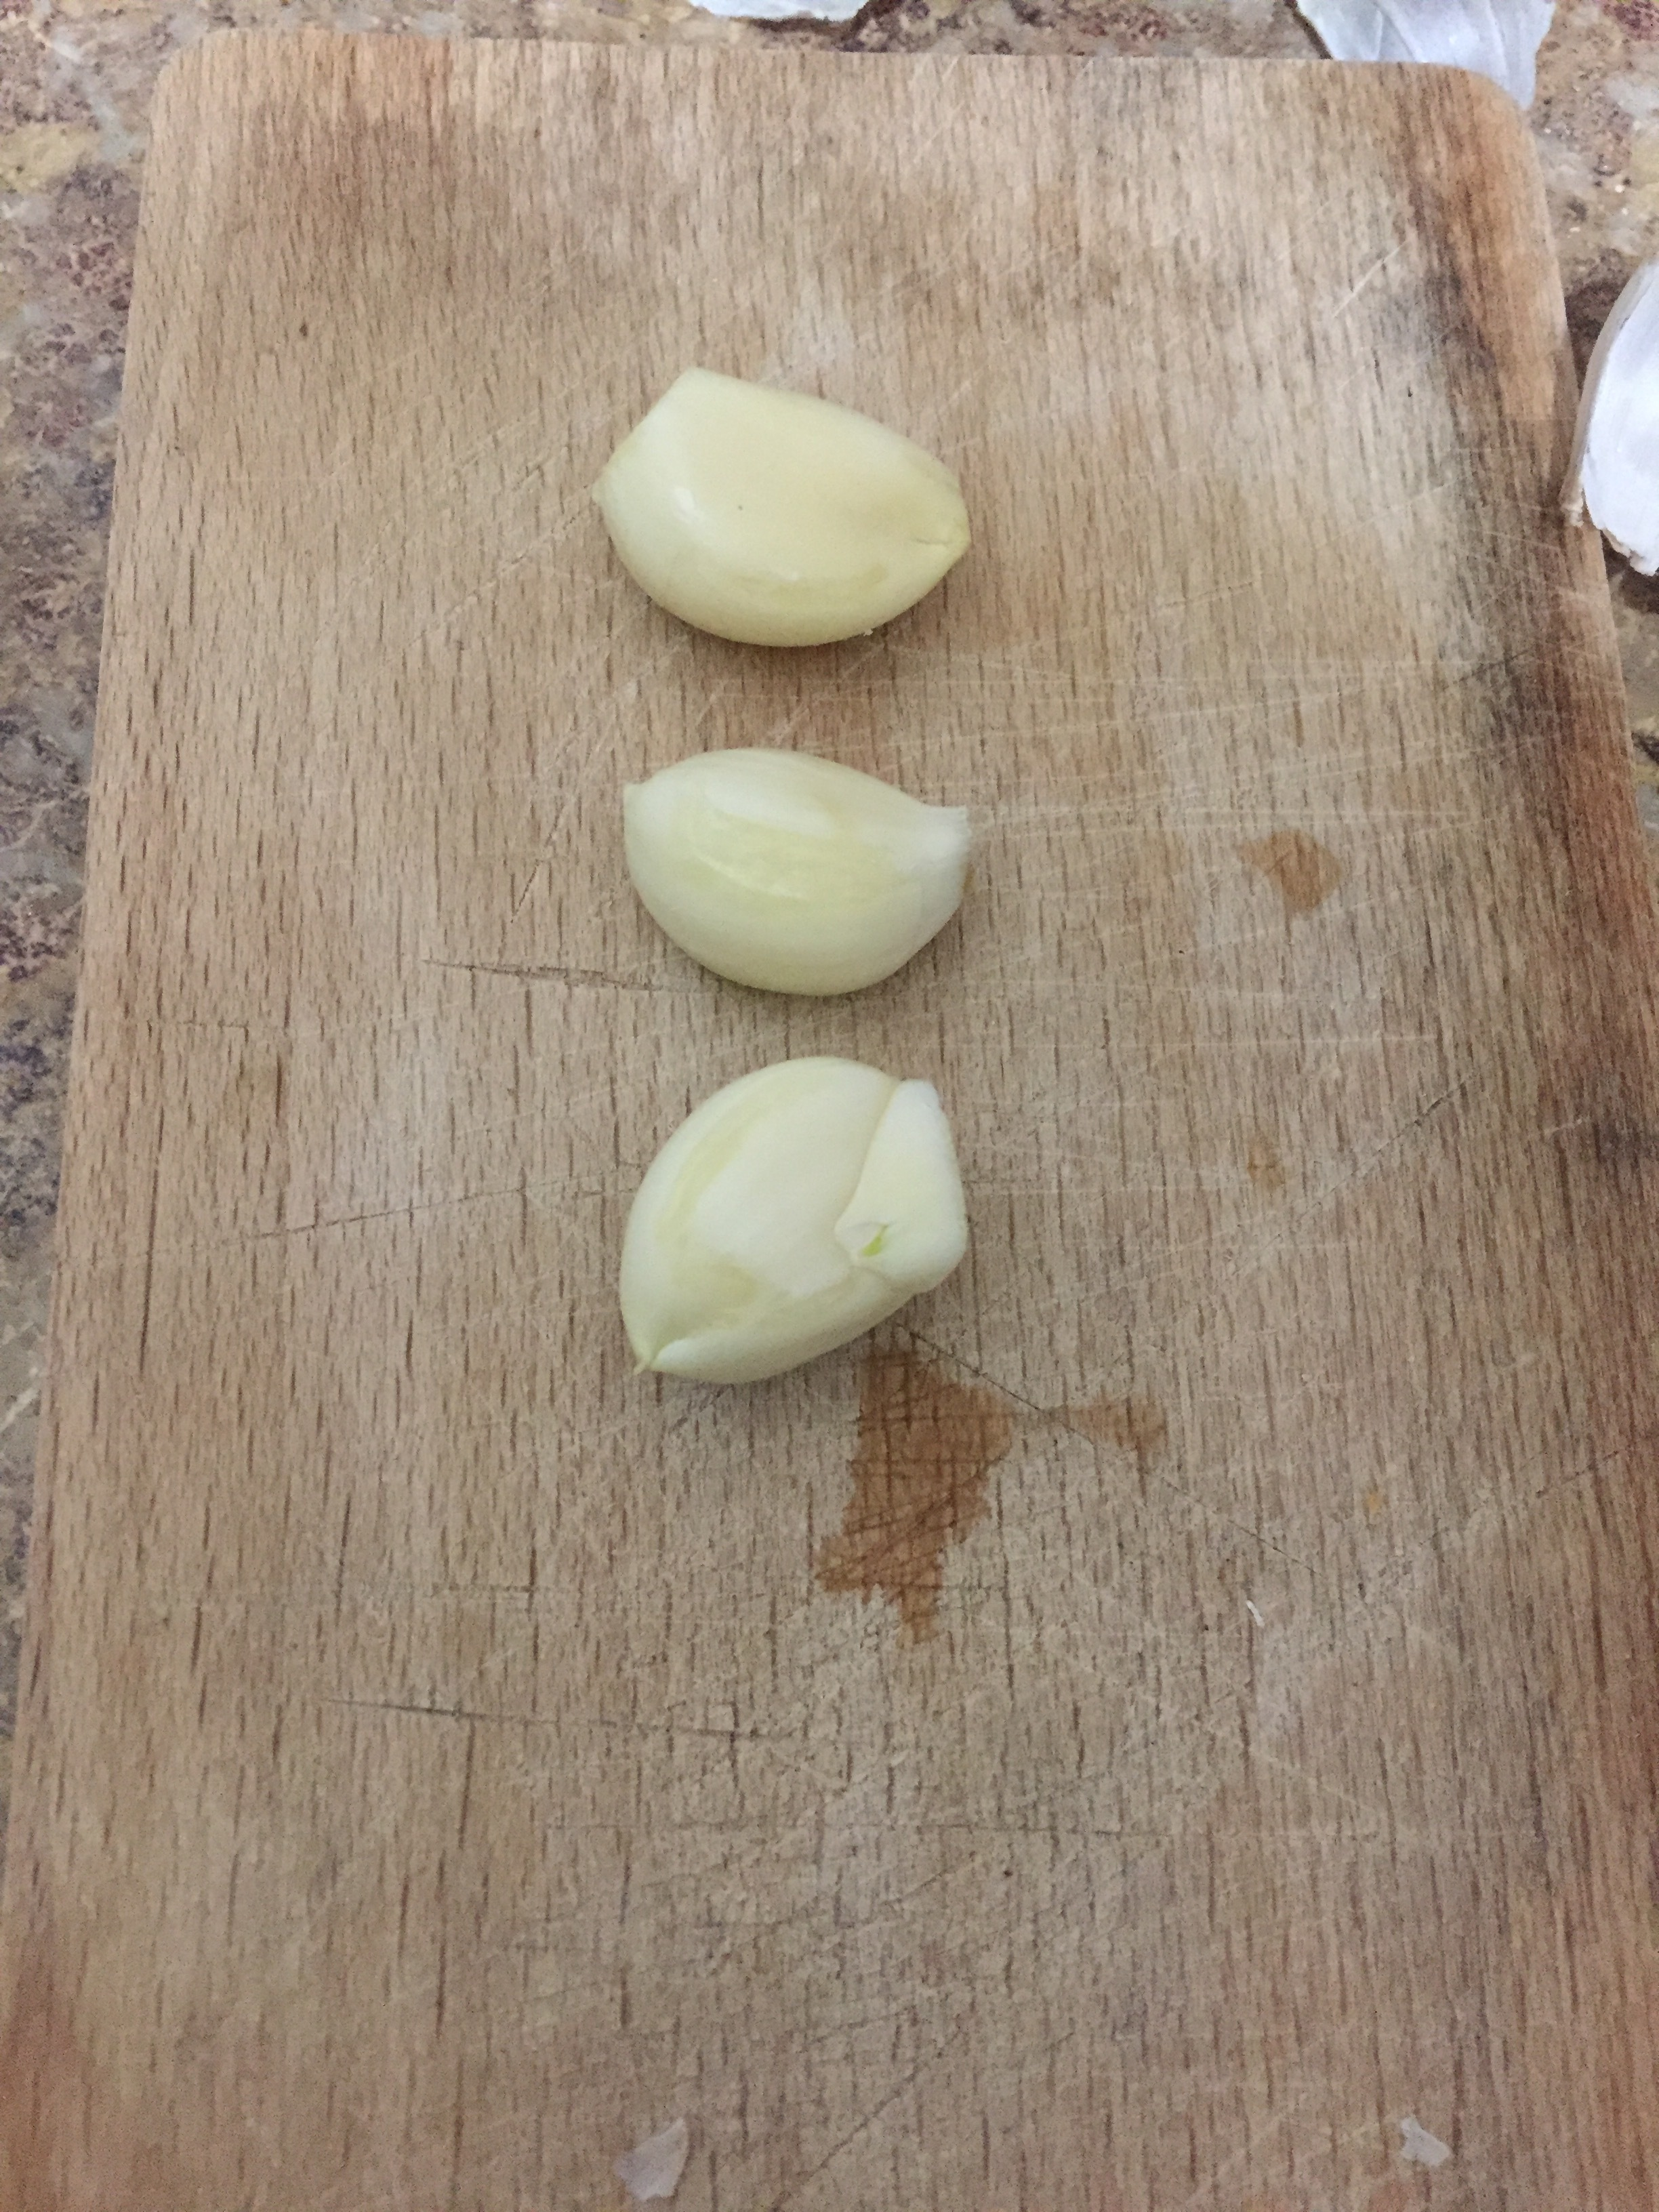 Dice the garlic cloves and add to a skillet coated in olive oil on medium heat, being careful not to overcook or burn.